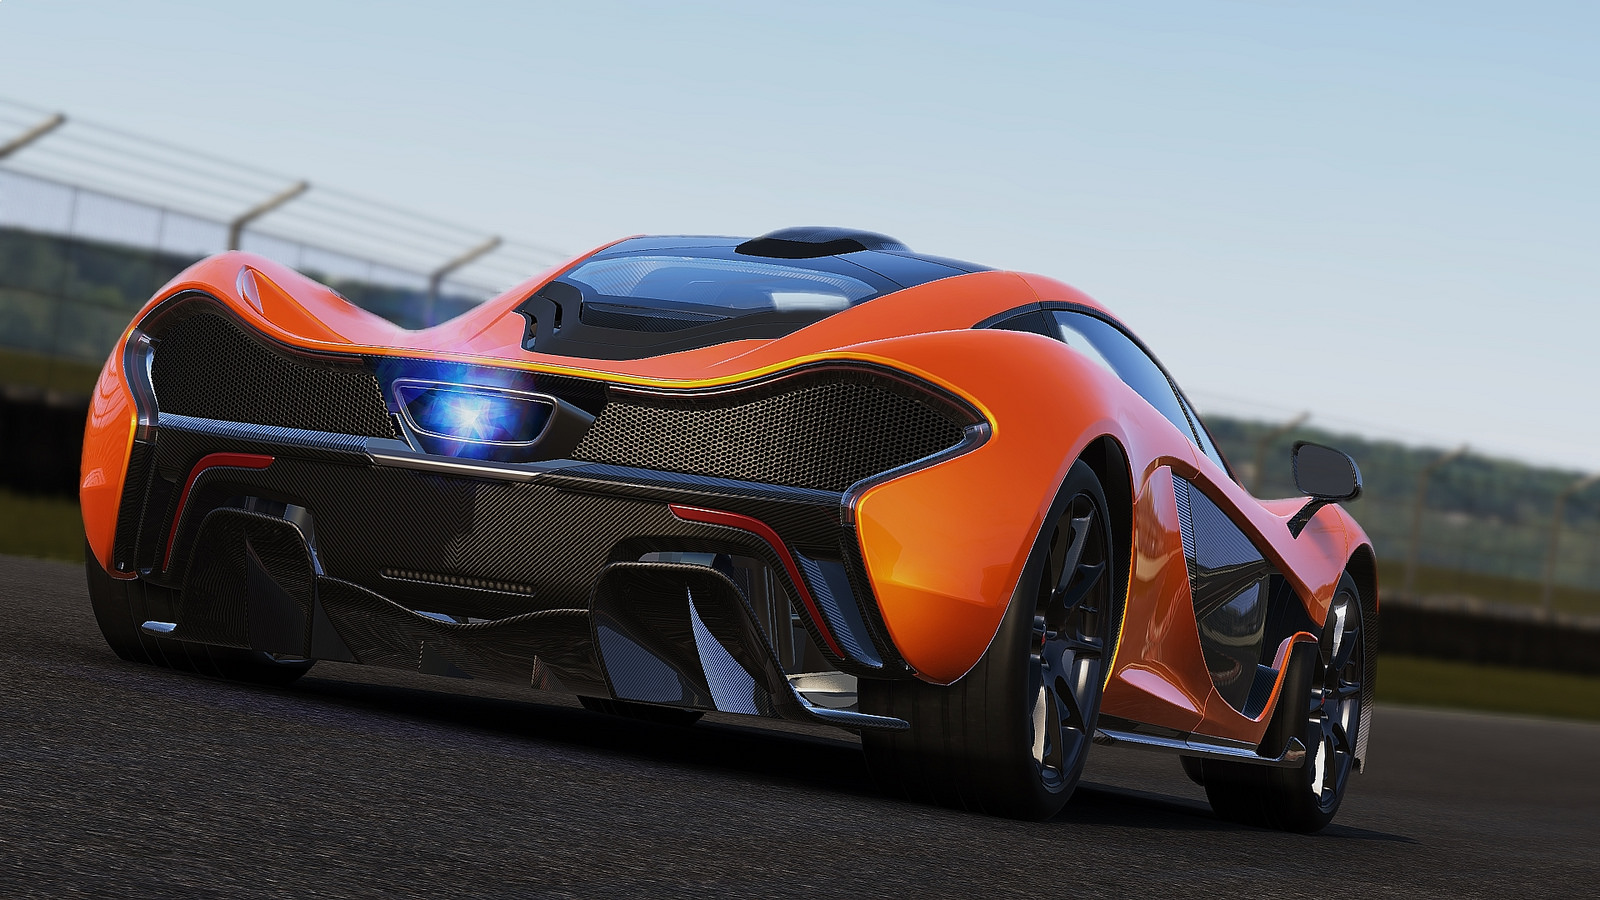 Mclaren p1 project cars photos 9 plan te - Project cars mclaren p1 ...